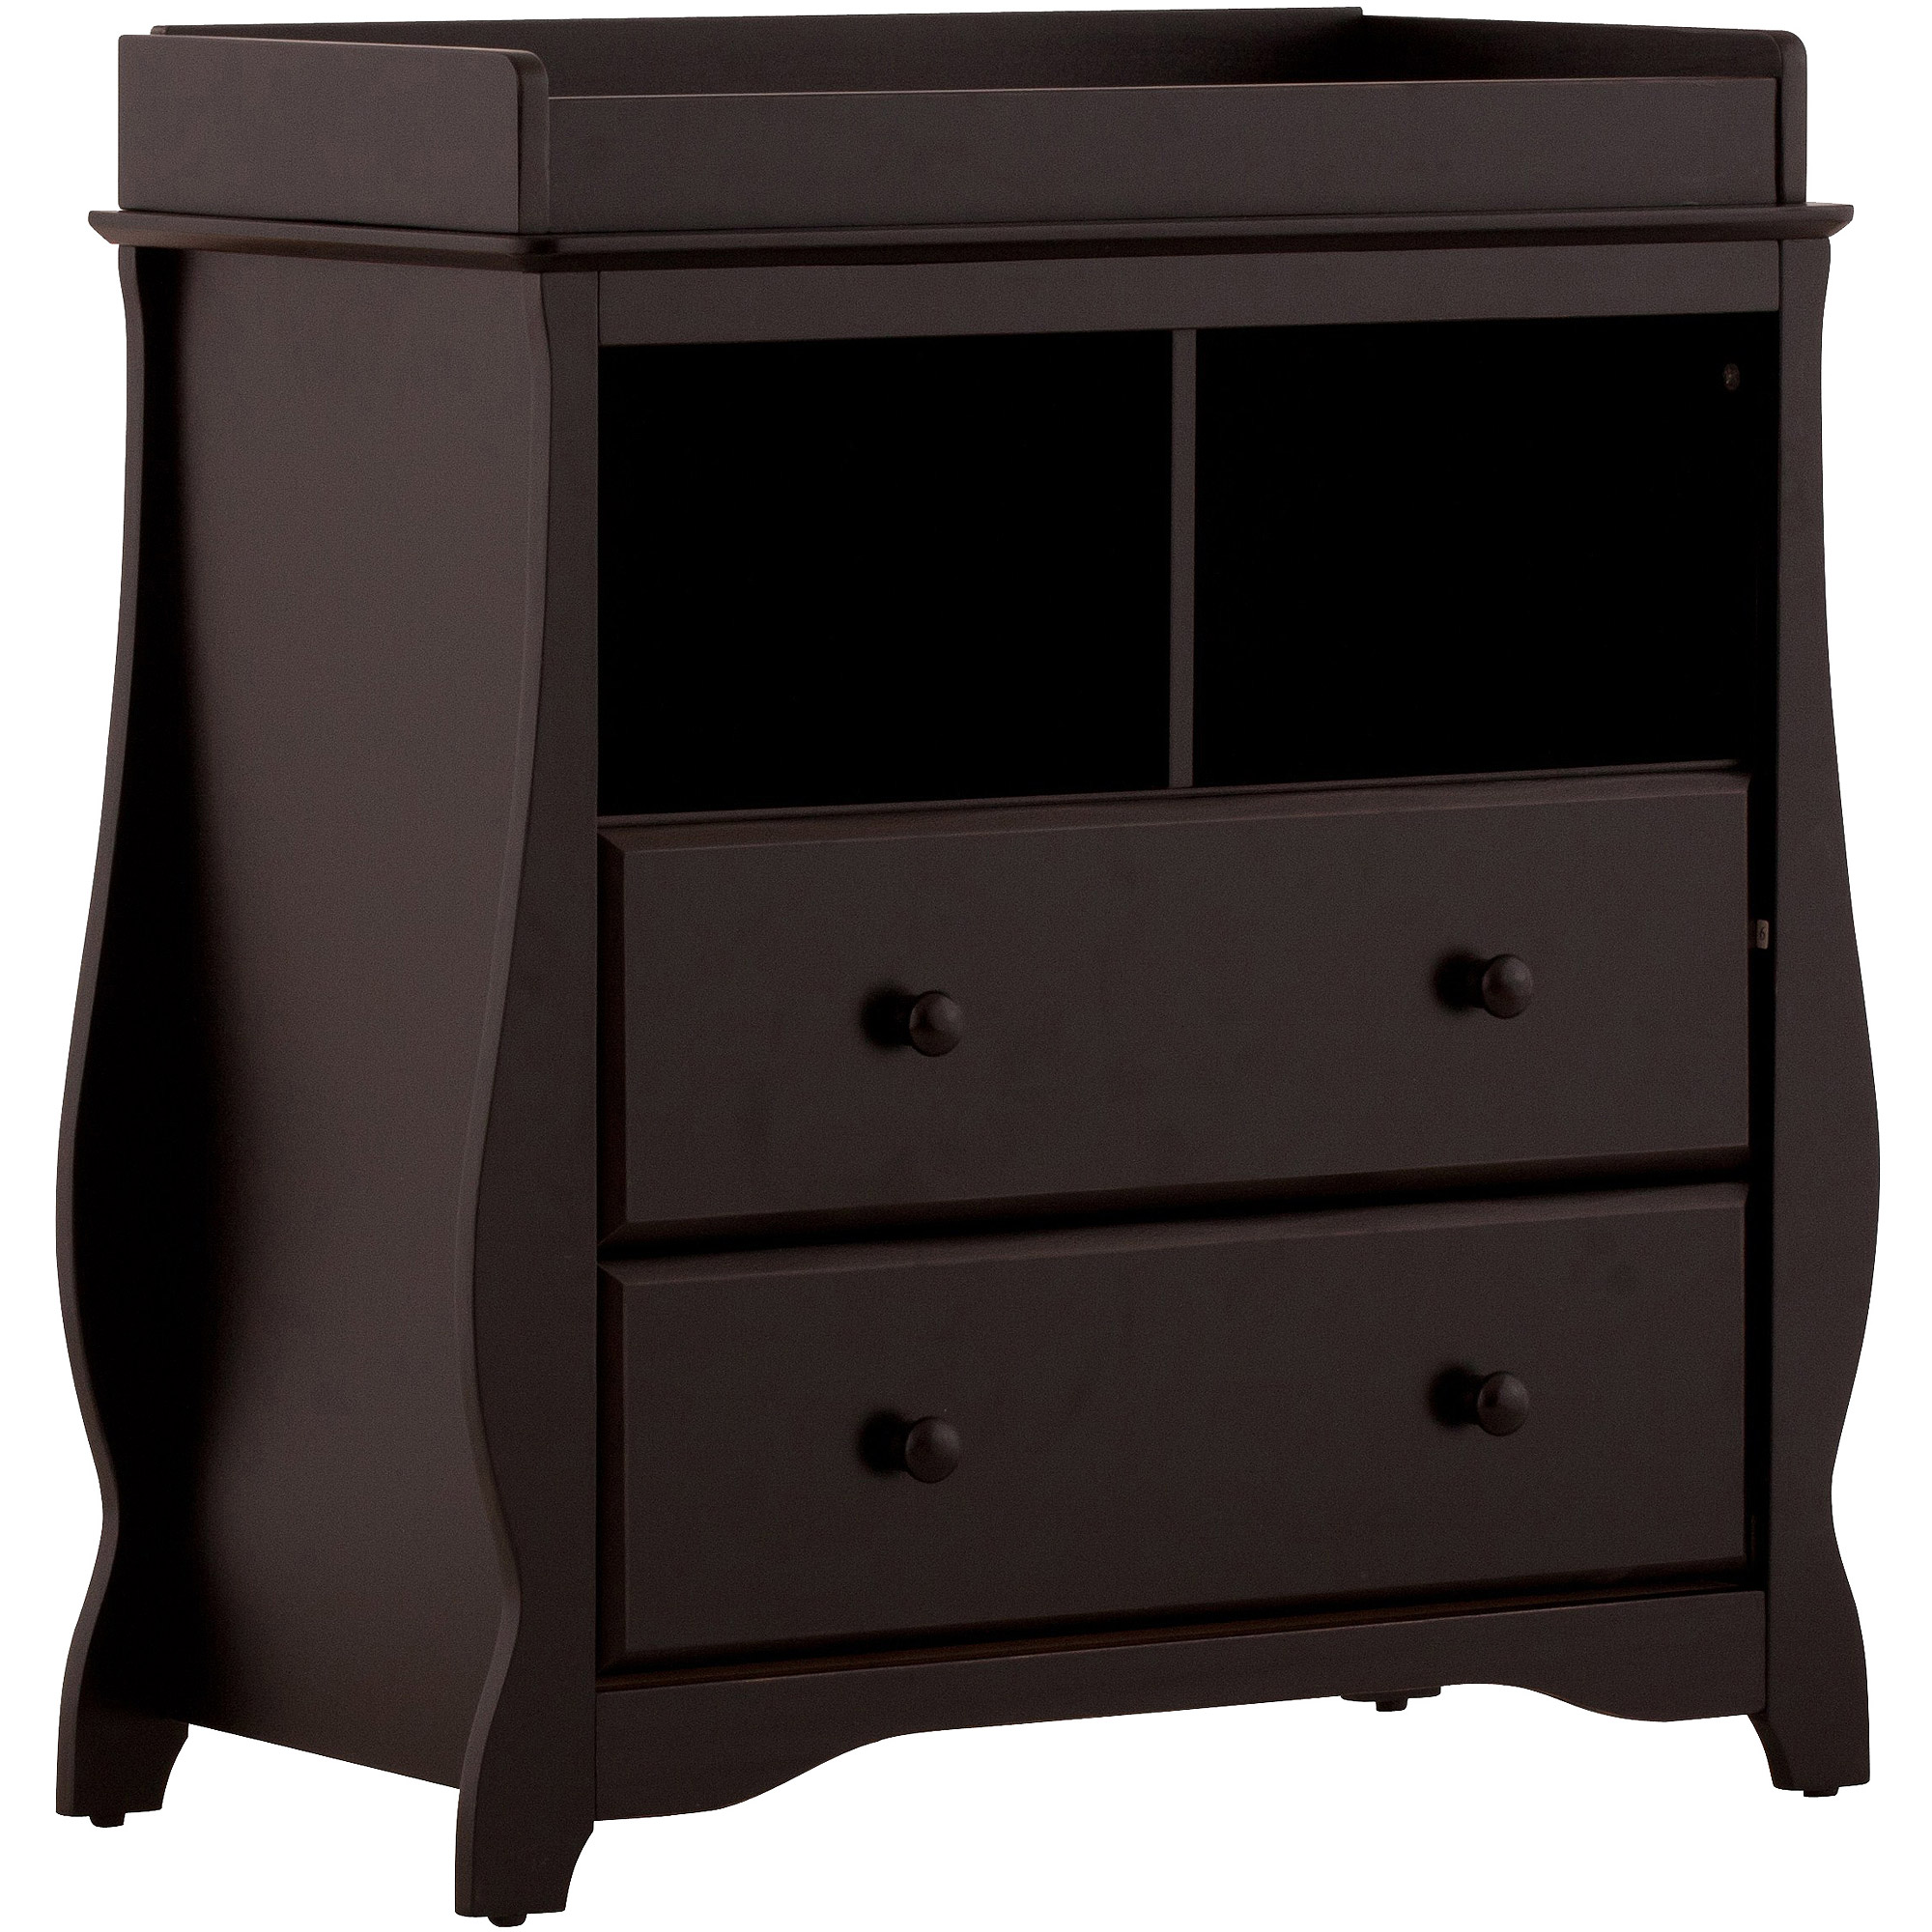 Storkcraft - Carrara 2-Drawer Changing Table, Choose Your Finish